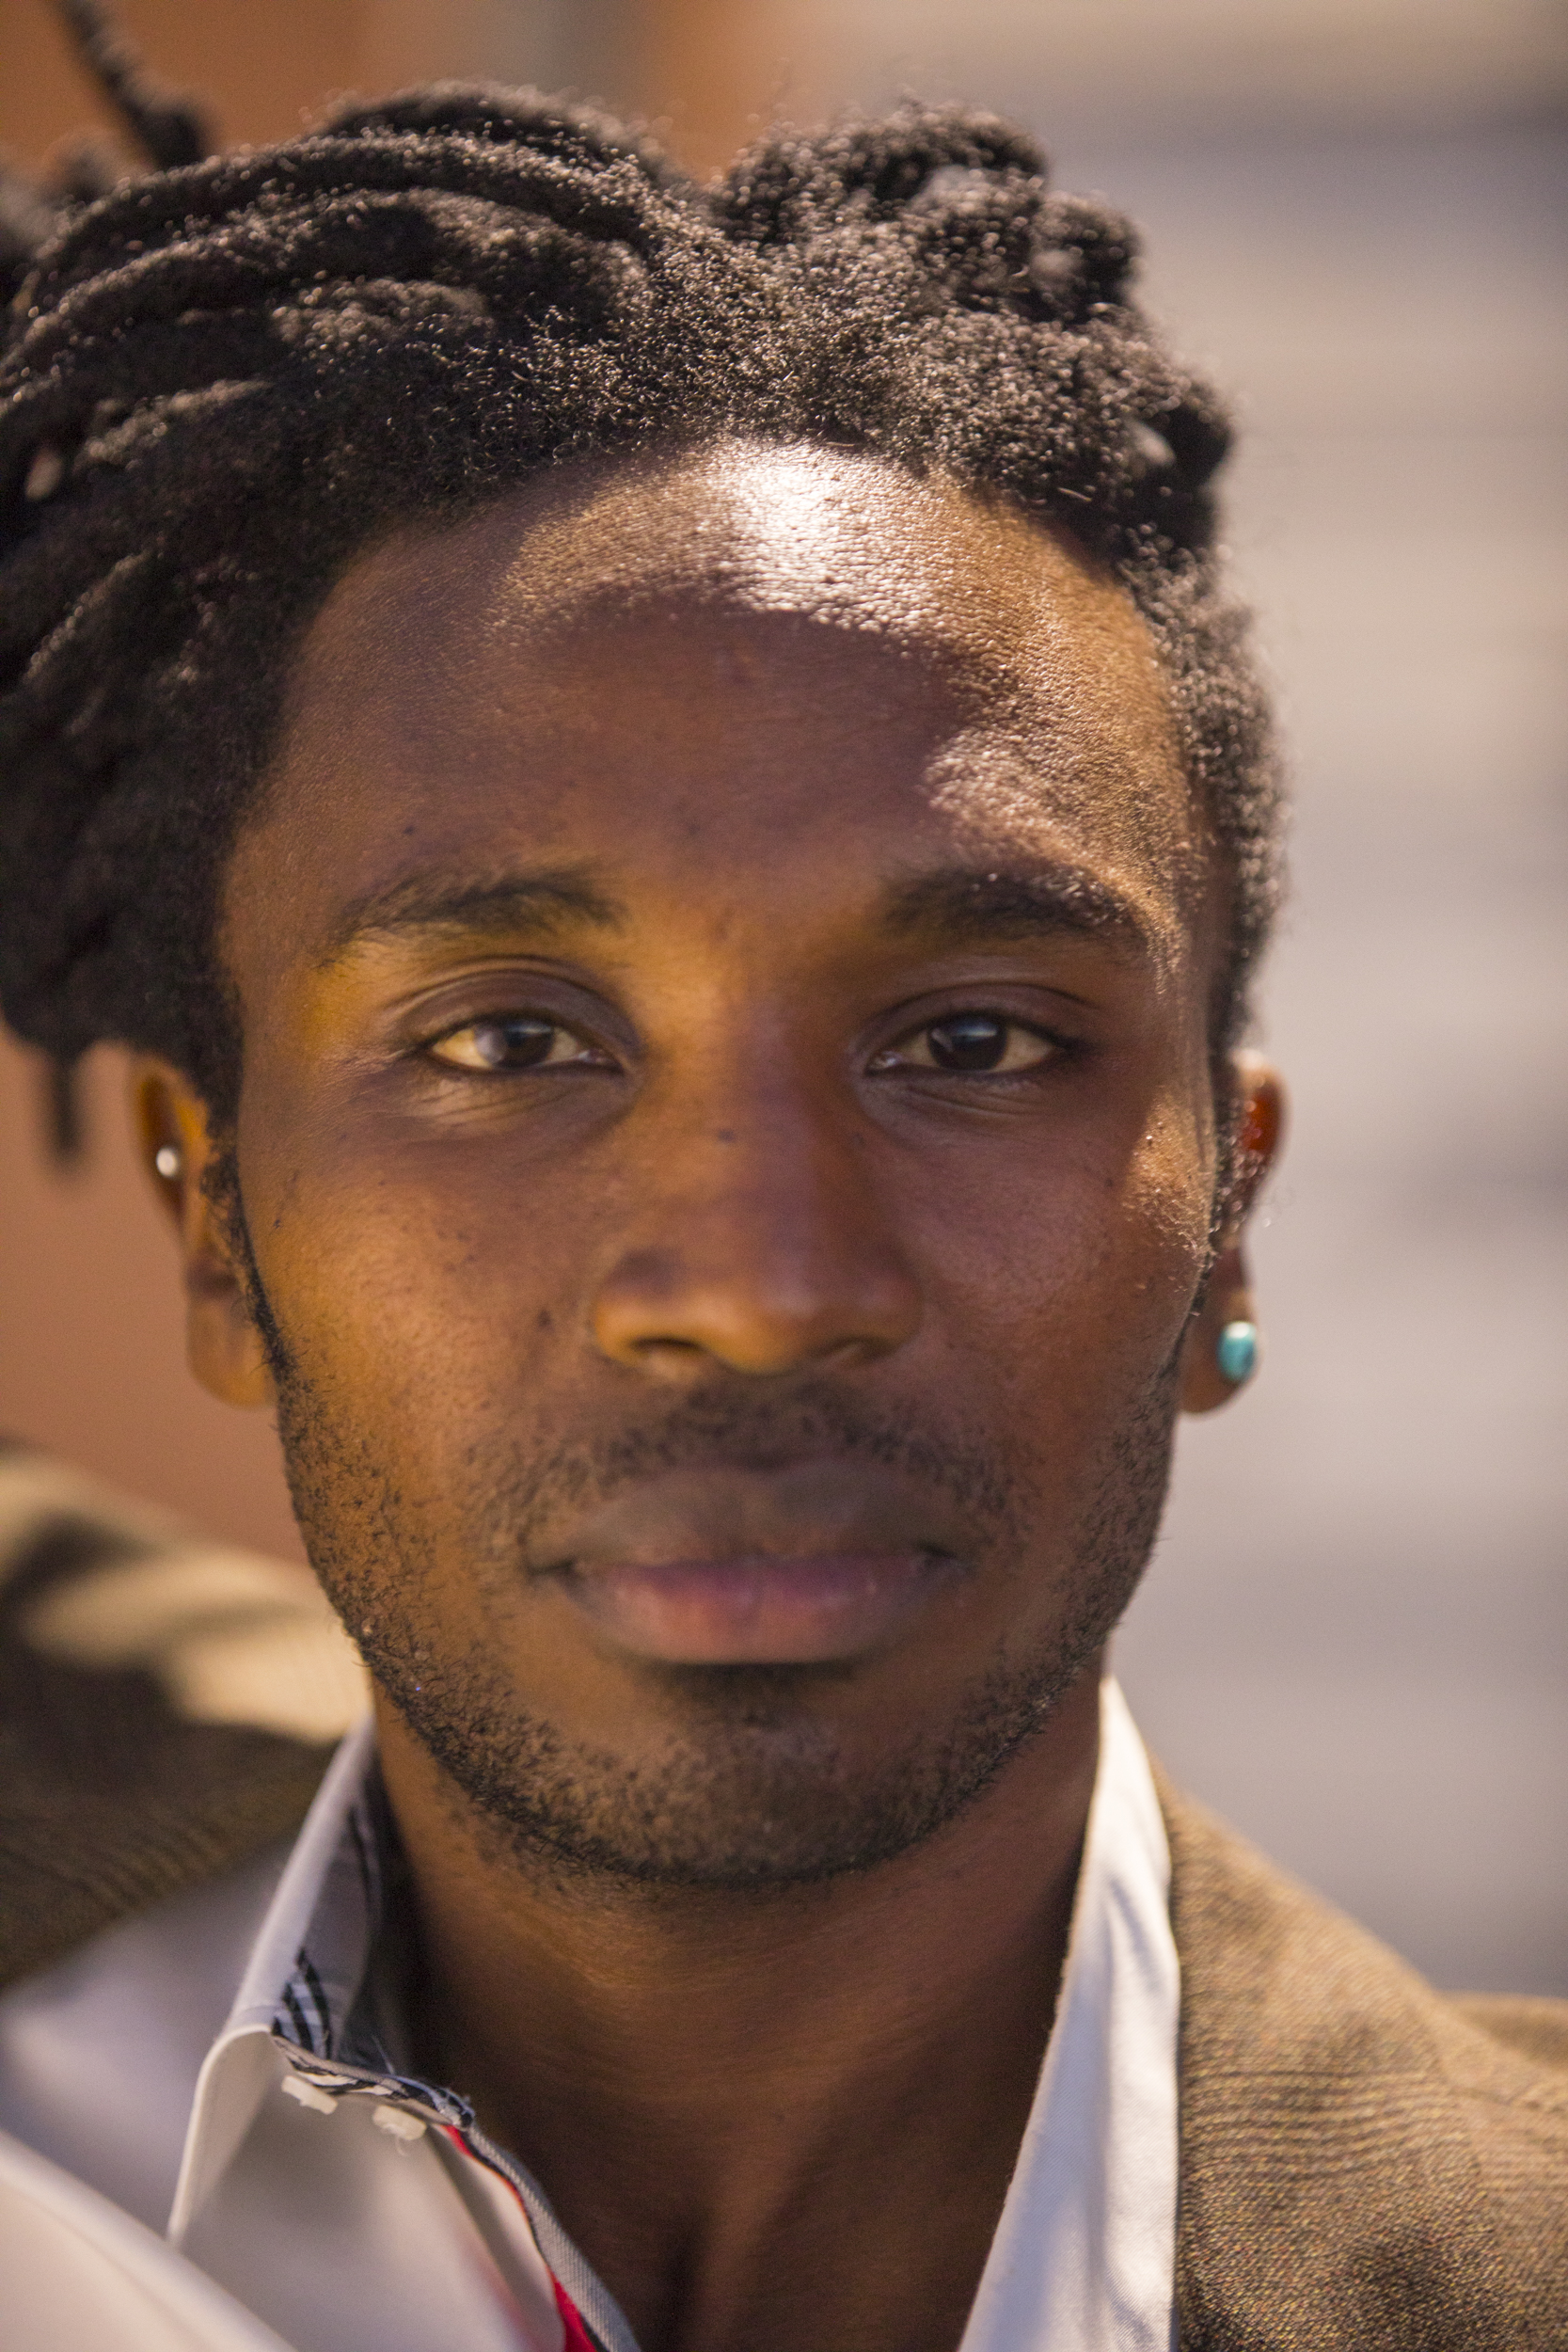 - A Kenyan-born writer, performer and media graduate, Mararo was short-listed for the Patrick White Award 2018, Next Stage Writer's Program Residency 2018 and nominated for the Performing Arts WA Awards Best Supporting Male Actor in 2017 and 2018. He was recently invited to participate in the Cybec Electric Play Readings and is currently working on his first independent project.